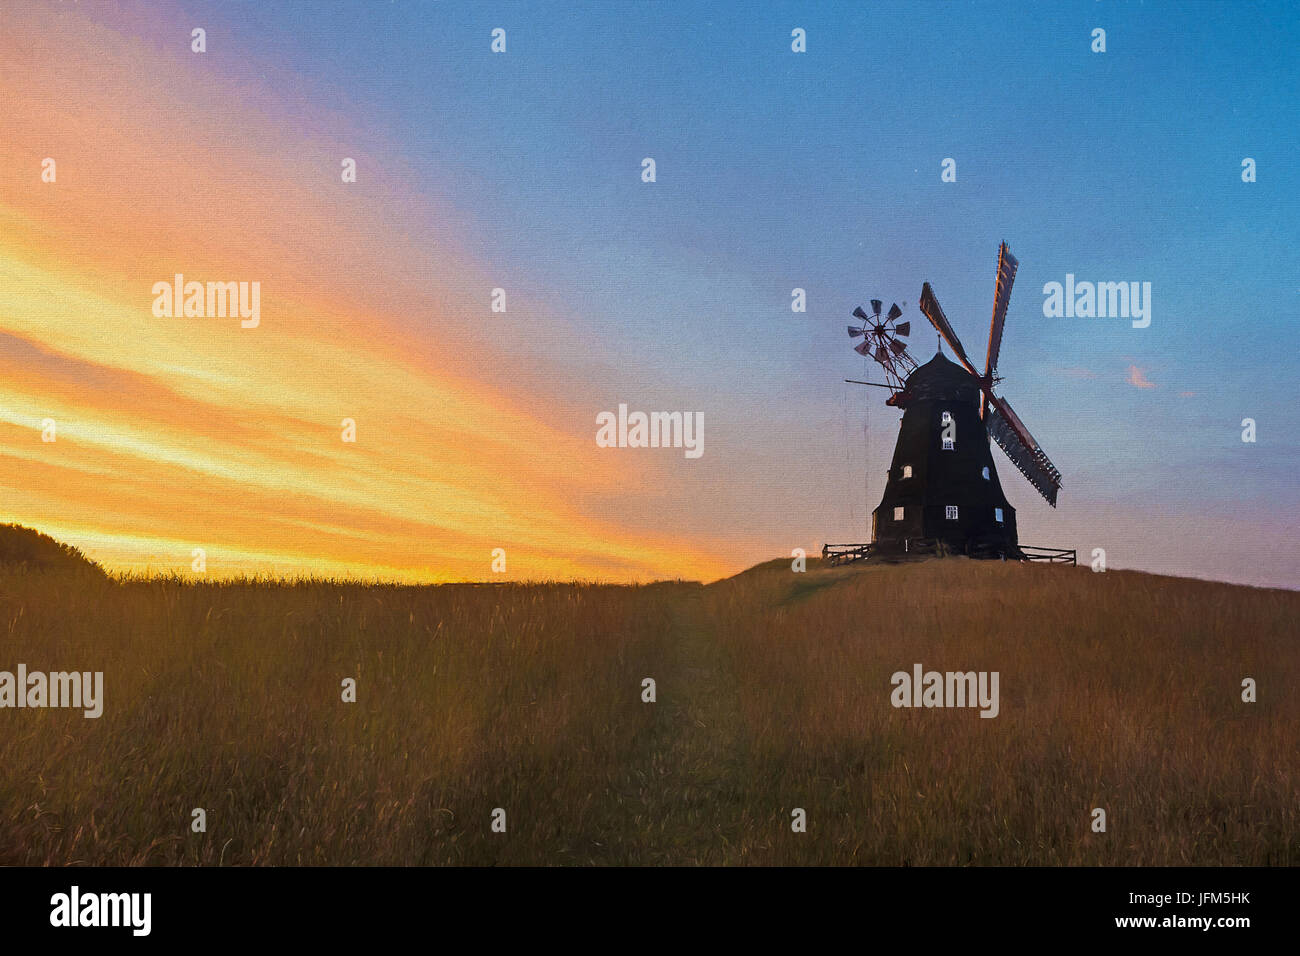 Digital Painting of a Windmill - Stock Image